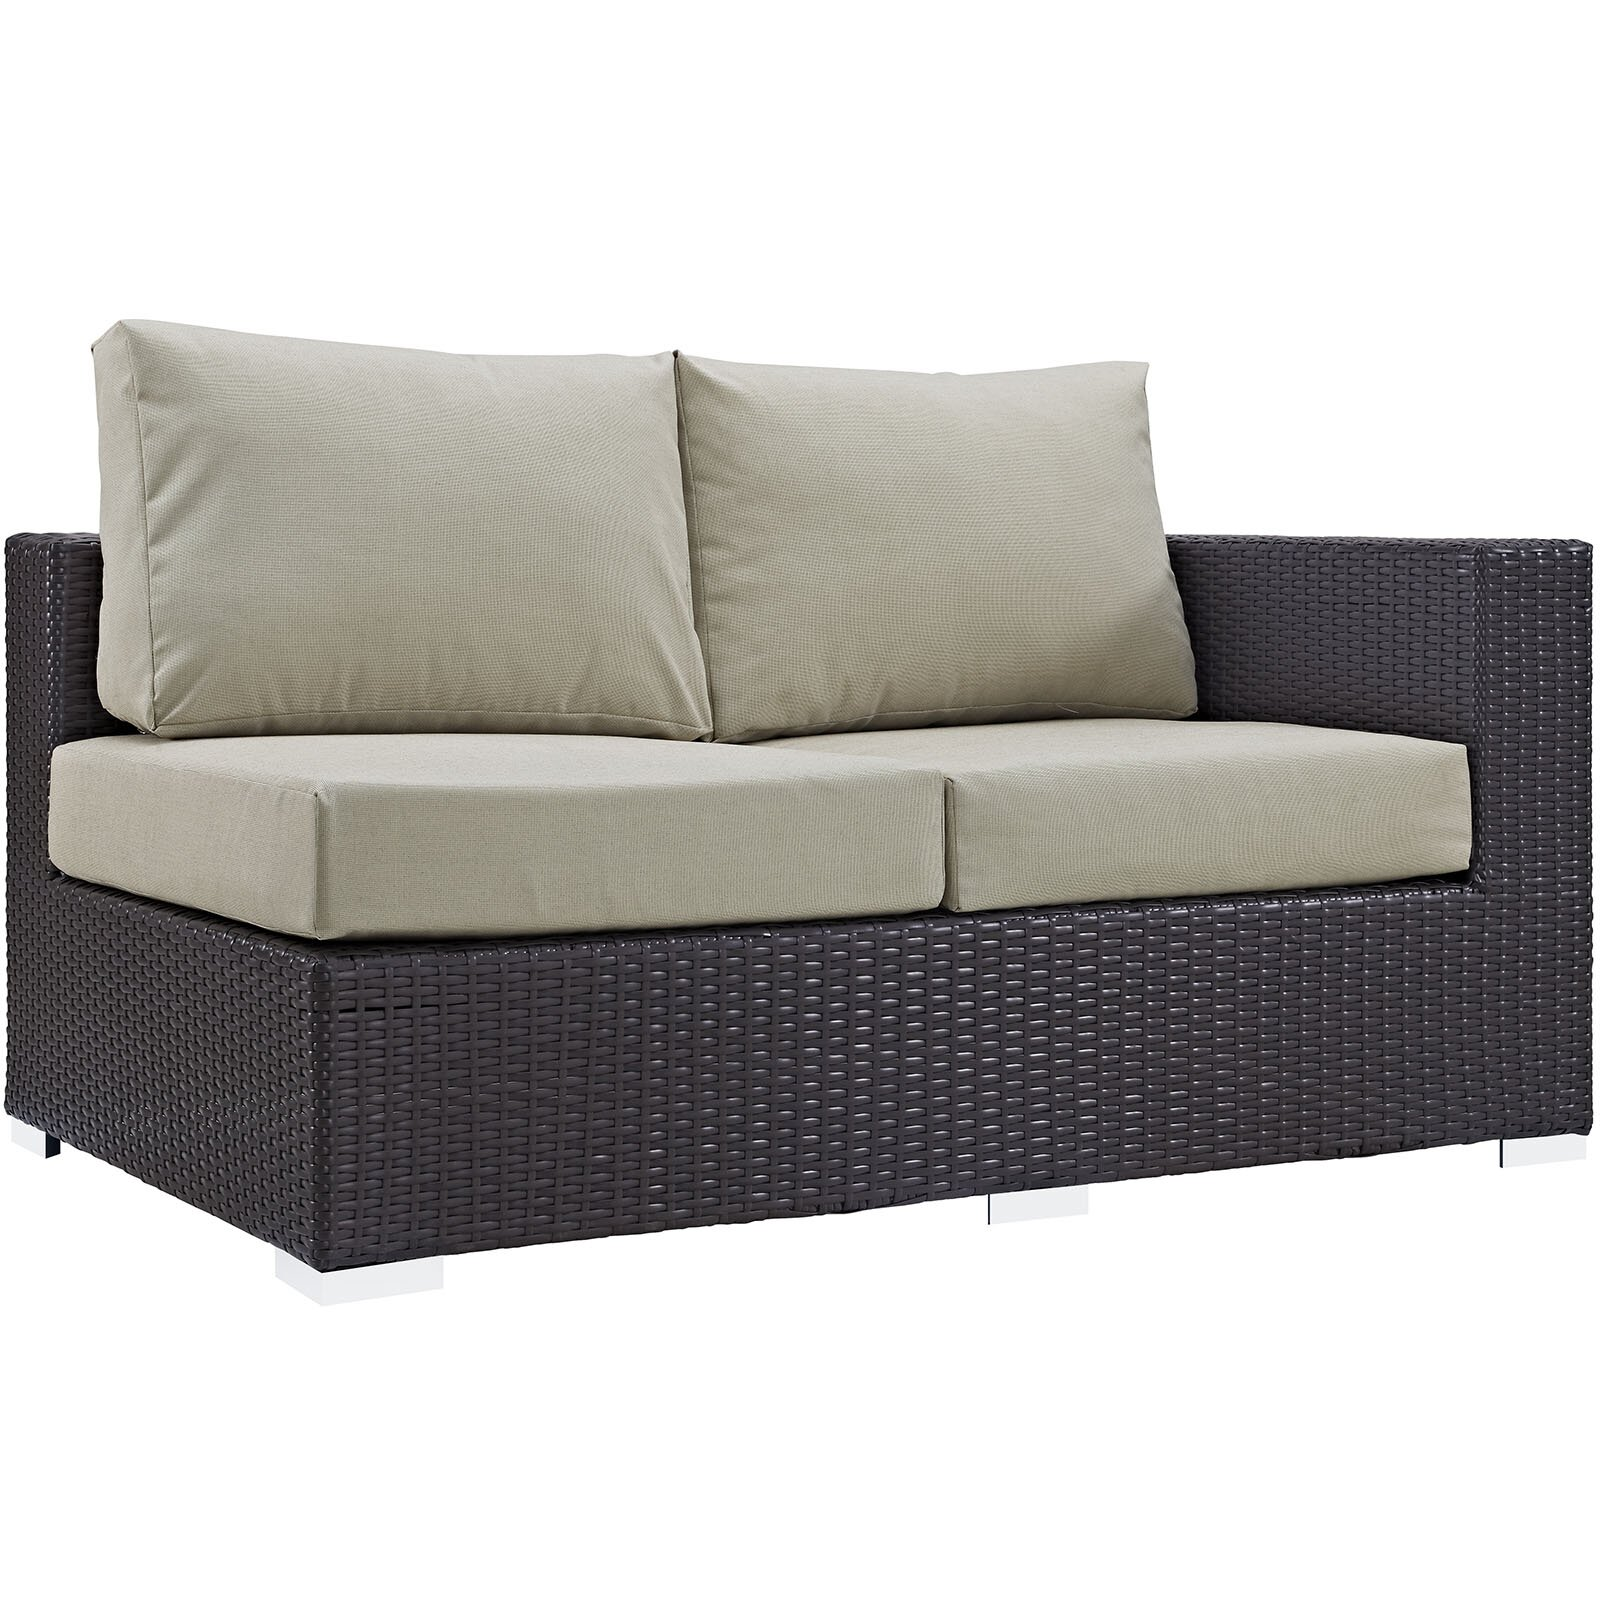 Modway Convene 4 Piece Patio Daybed with Cushions